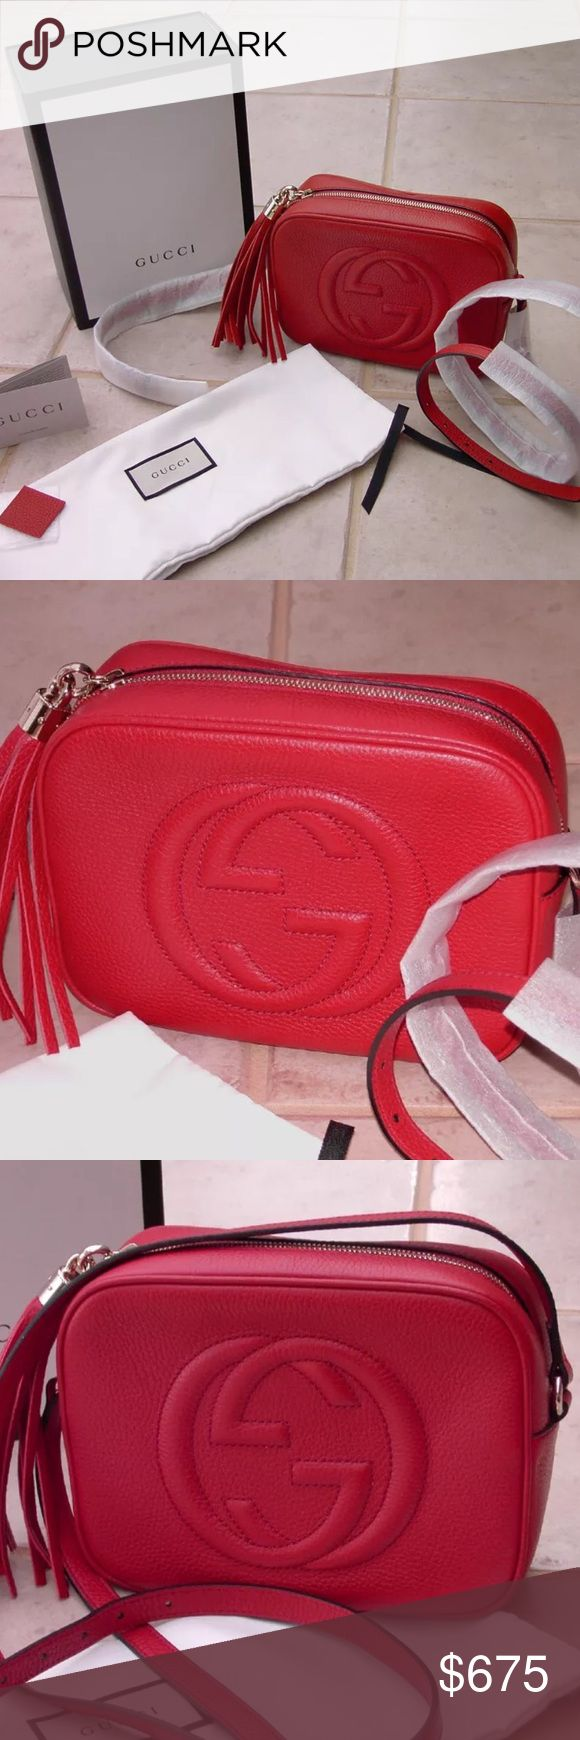 Gucci Soho Disco Red Crossbody Bag 100% Authentic 🔺 We are a very negotiable service 🔺 We provide overnight shipping and express shipping 🔺 Our transactions are made through third party applications 🔺 If you are interested in buying this product please contact us via 646-431-6521 🔺 Gucci Bags Crossbody Bags